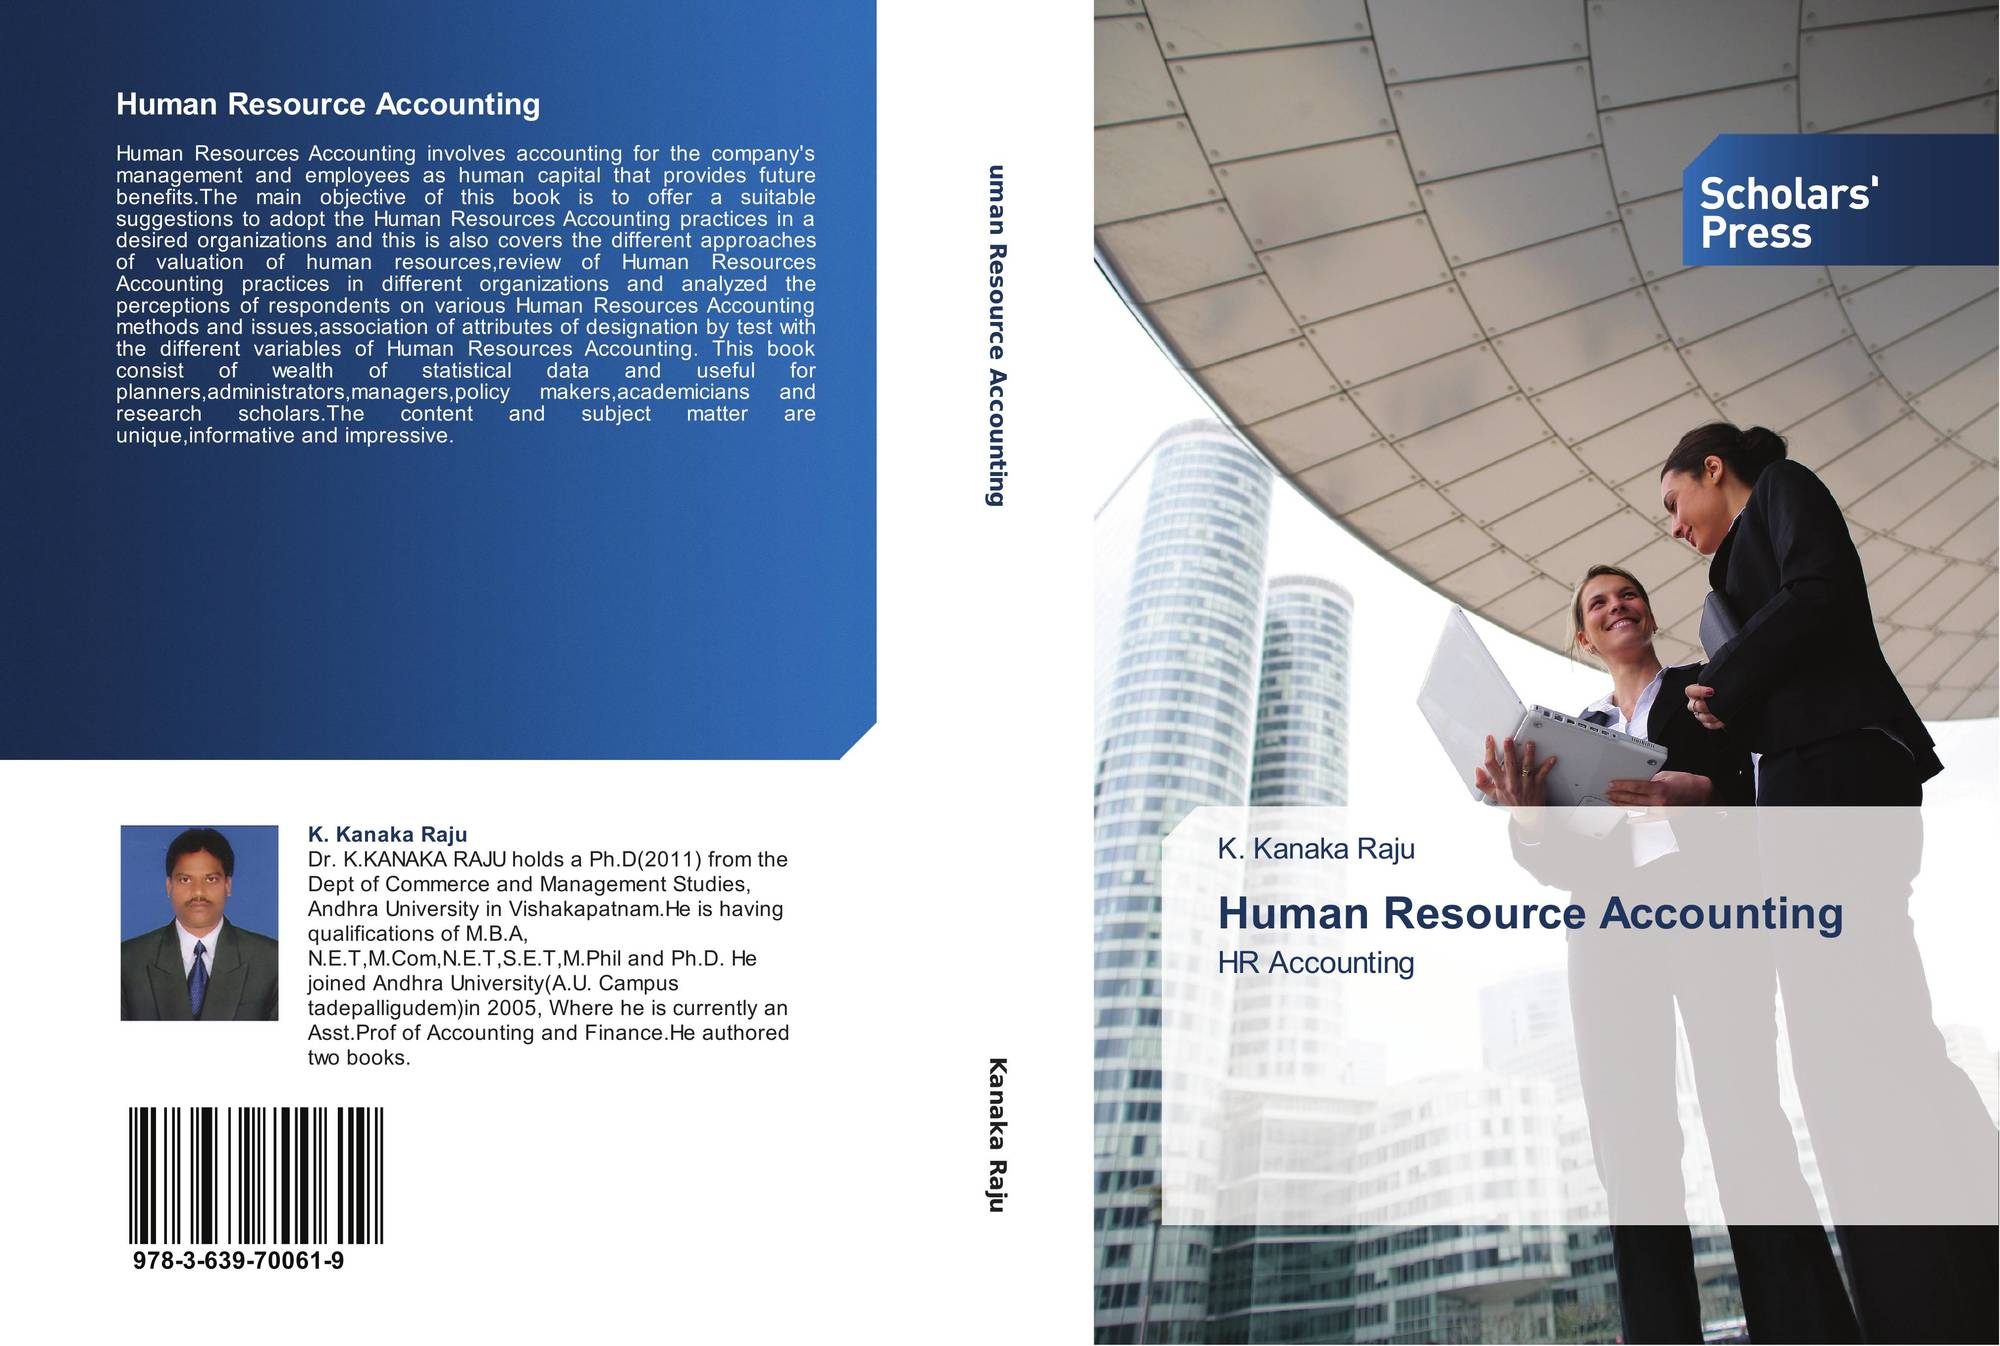 an analysis of the human resource accounting field in the economic theory of the united states Economicsthe methodology of economics [1]the functions of an economic system [2]money, income, and the price level [3]subfields of economics [4]organization and growth of the profession [5]bibliography [6]references to specific topics in economics will be found throughout this article.